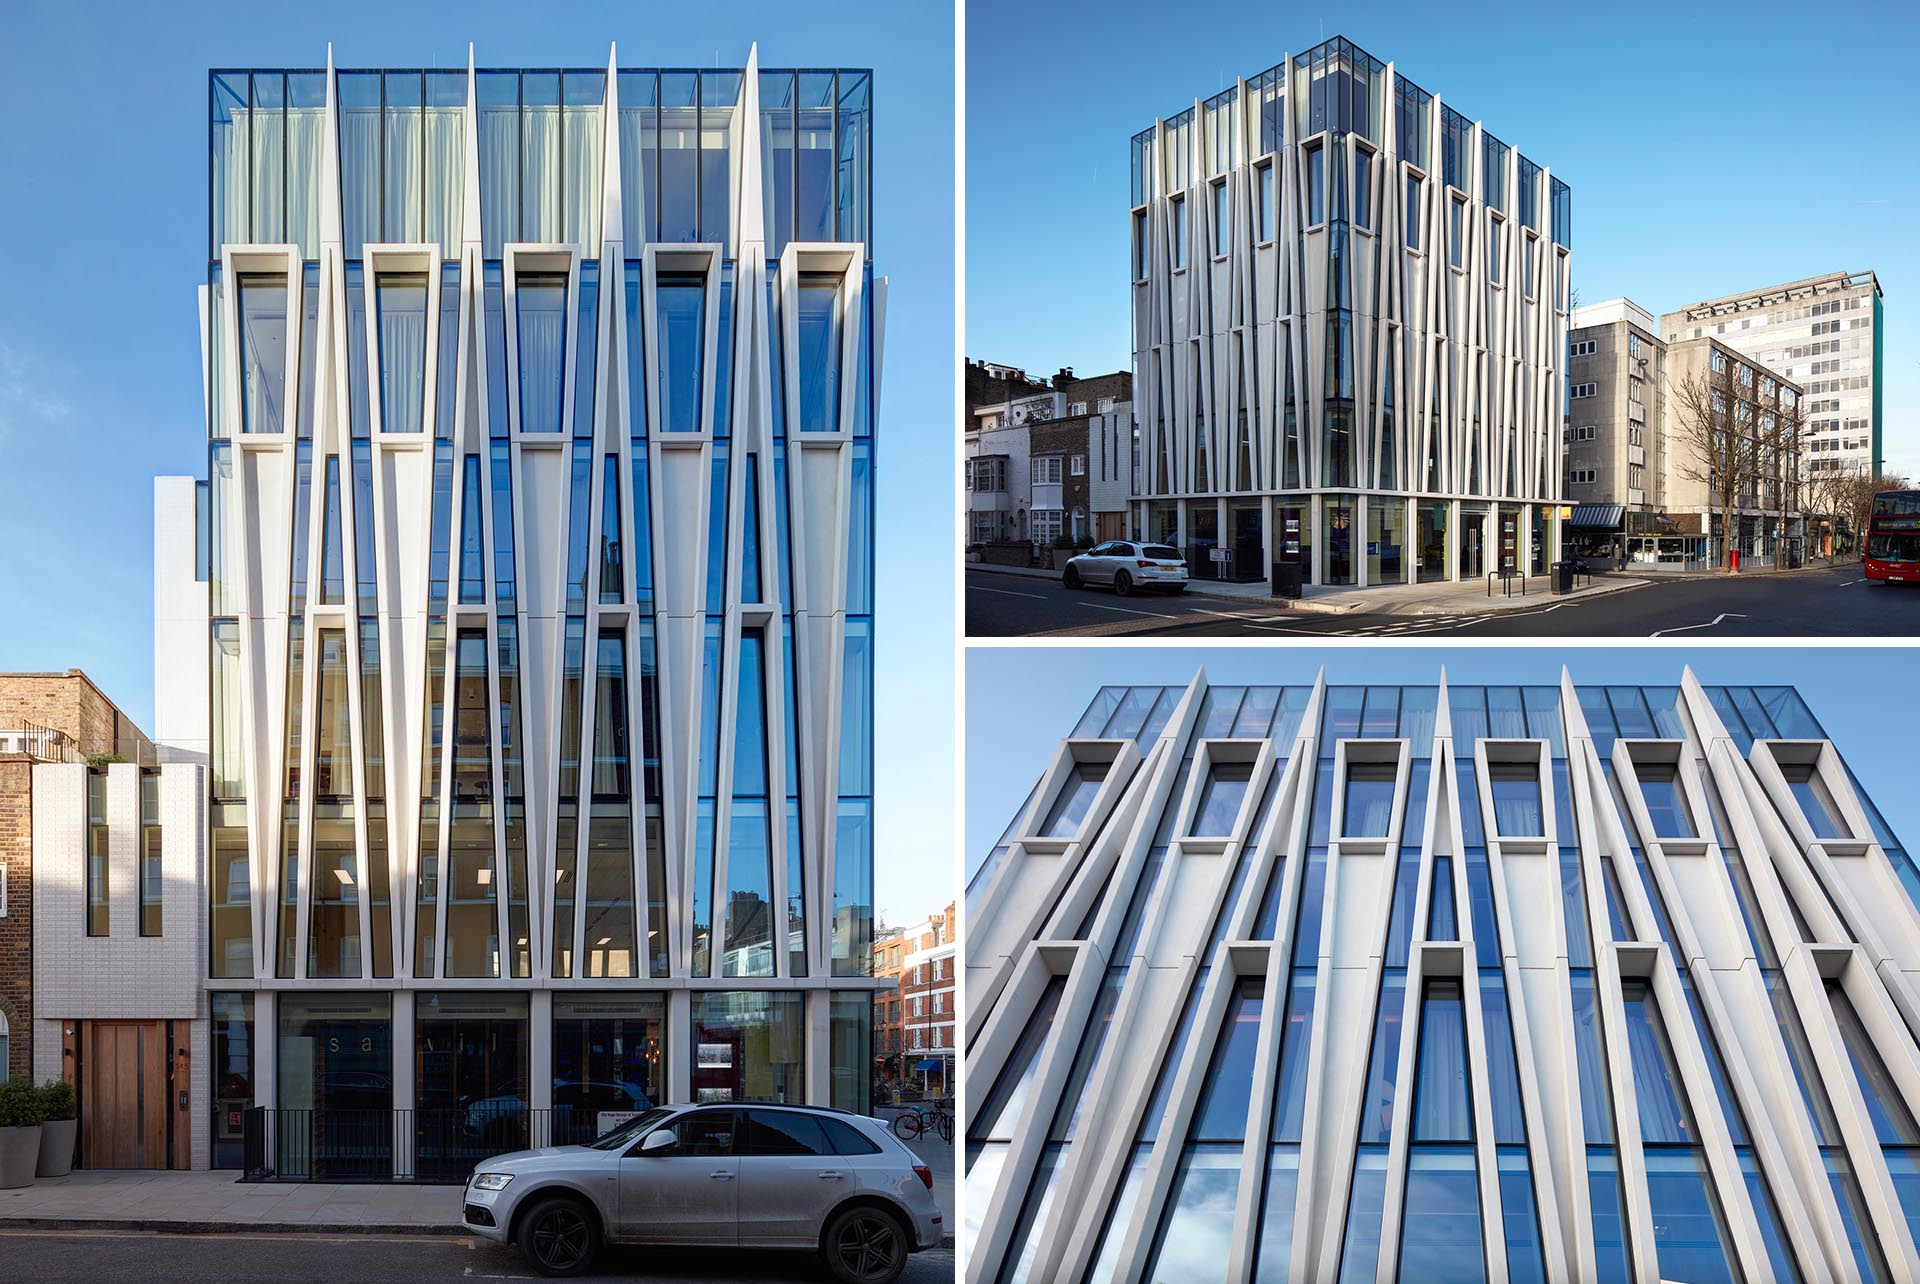 Triangular Accents Inspired By Candles Adorn This New Building In London